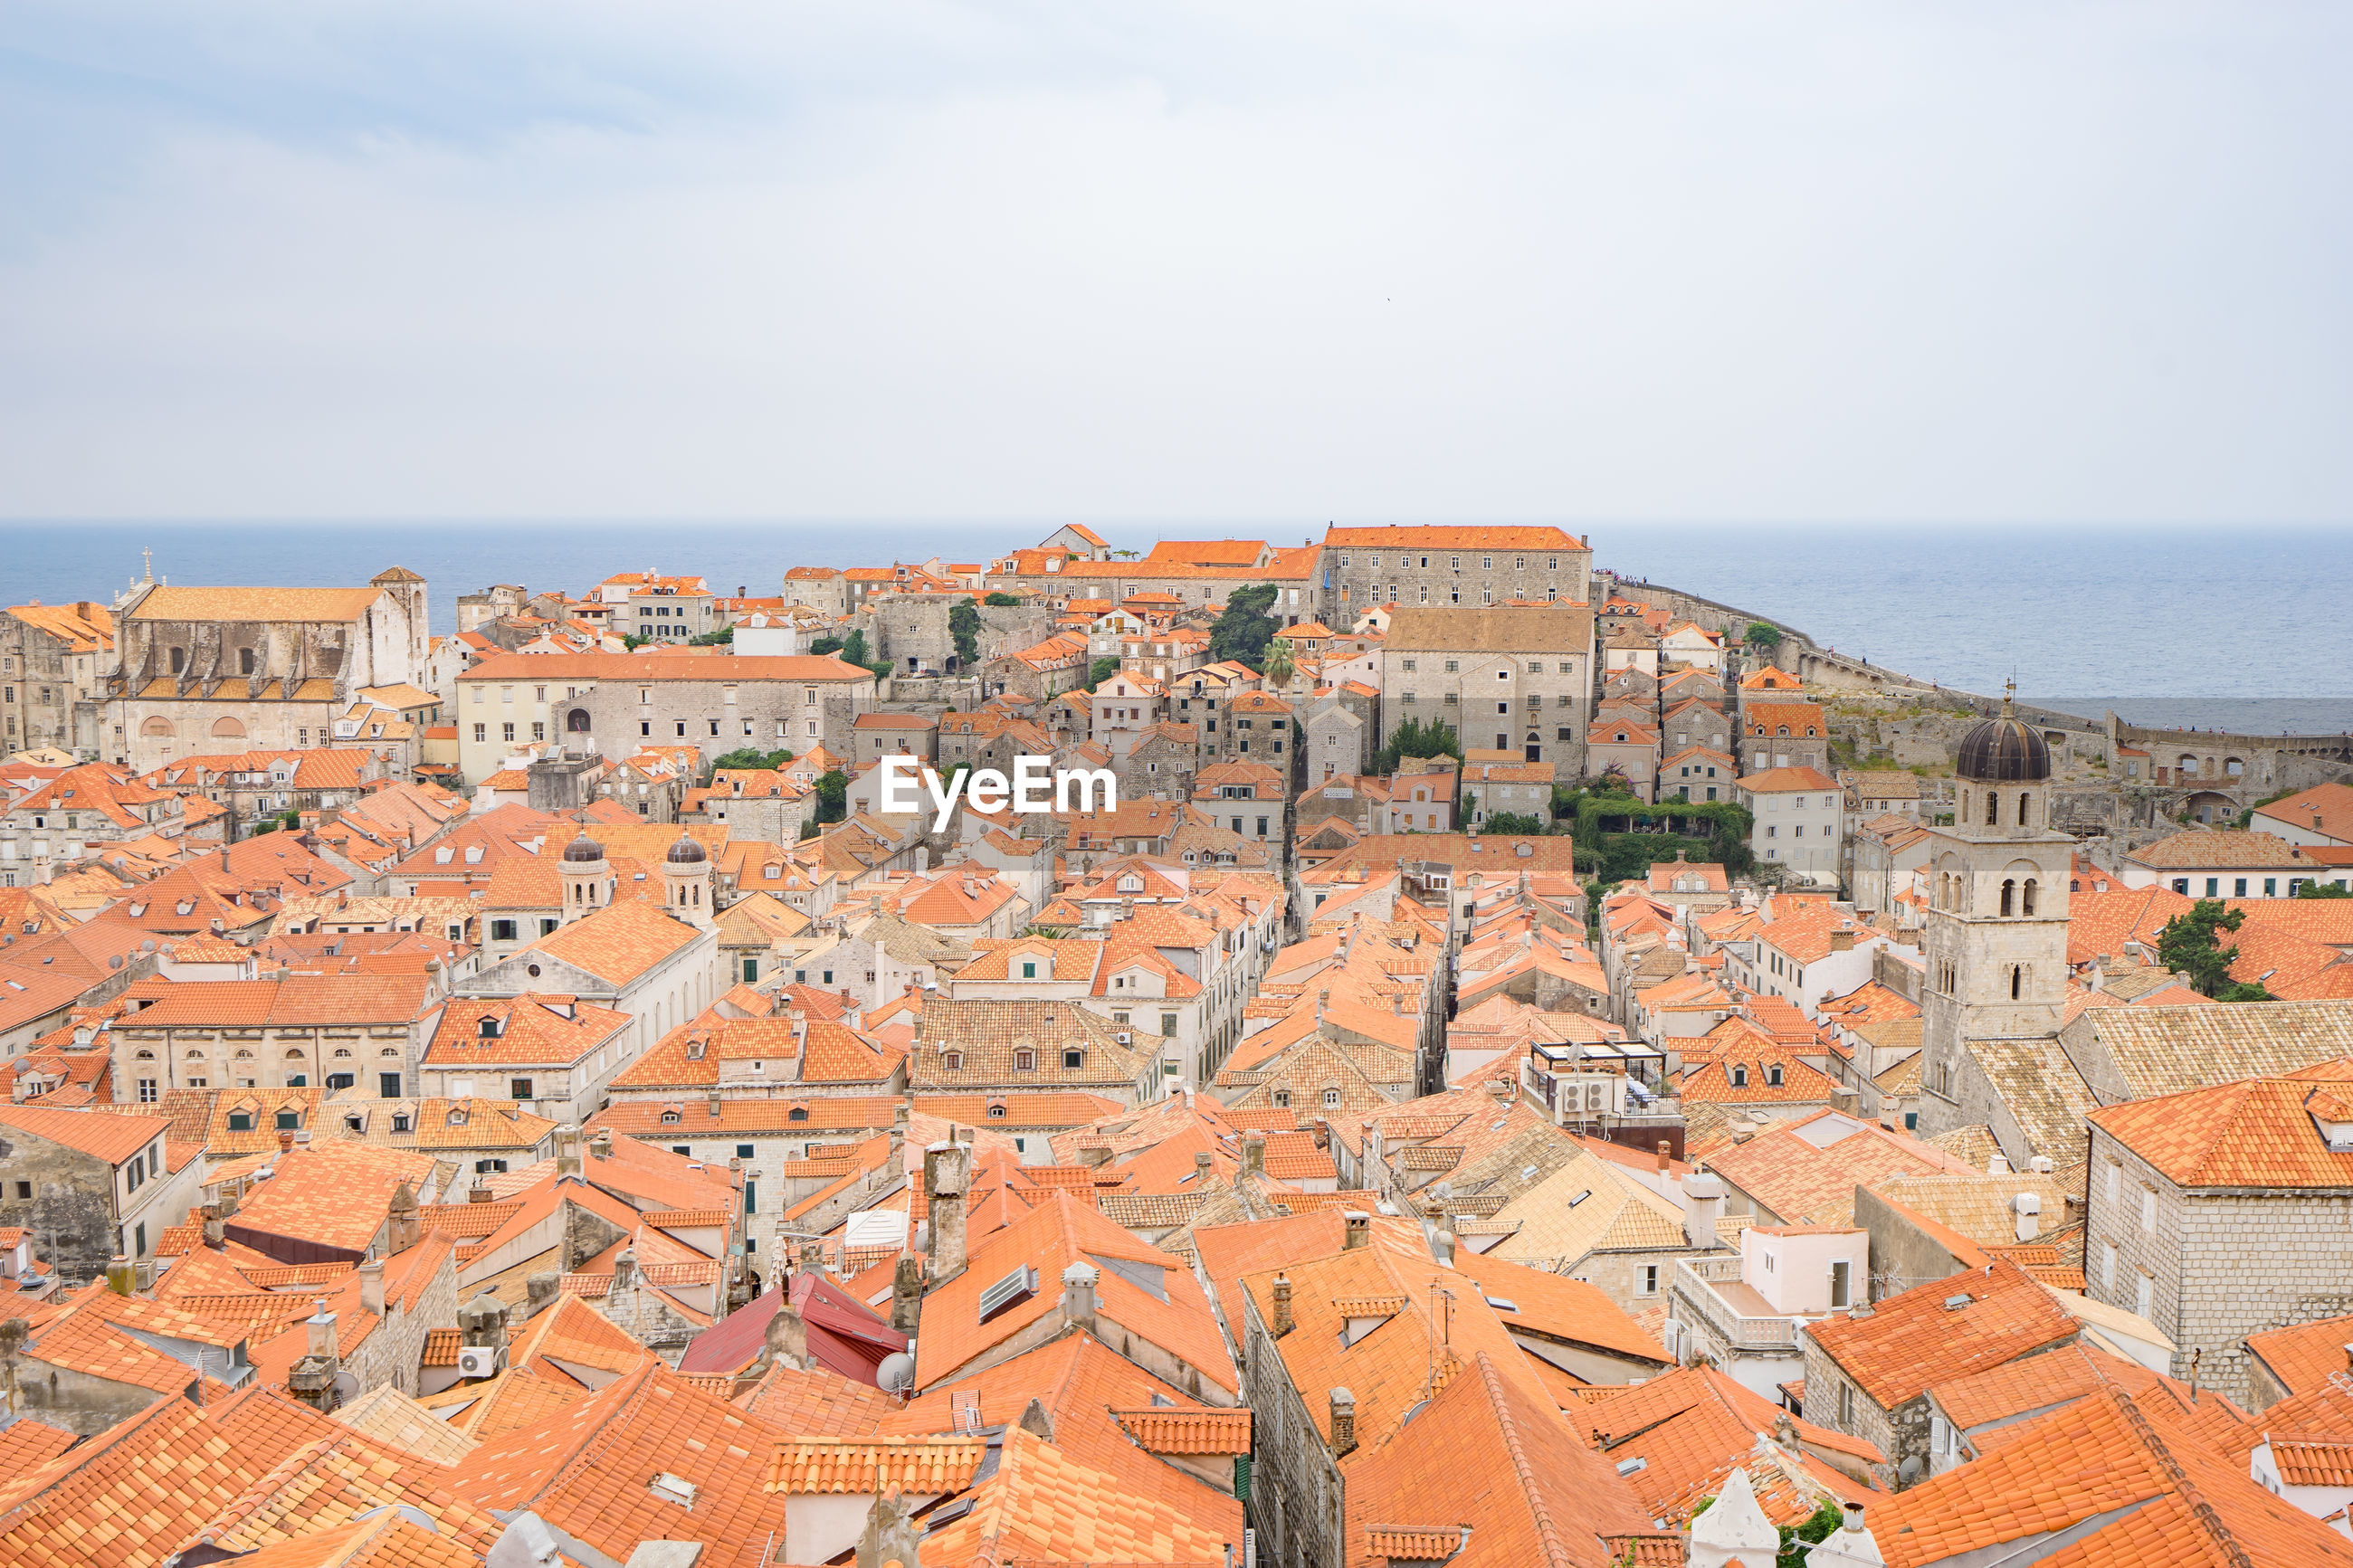 HIGH ANGLE VIEW OF TOWNSCAPE BY SEA AGAINST SKY IN TOWN